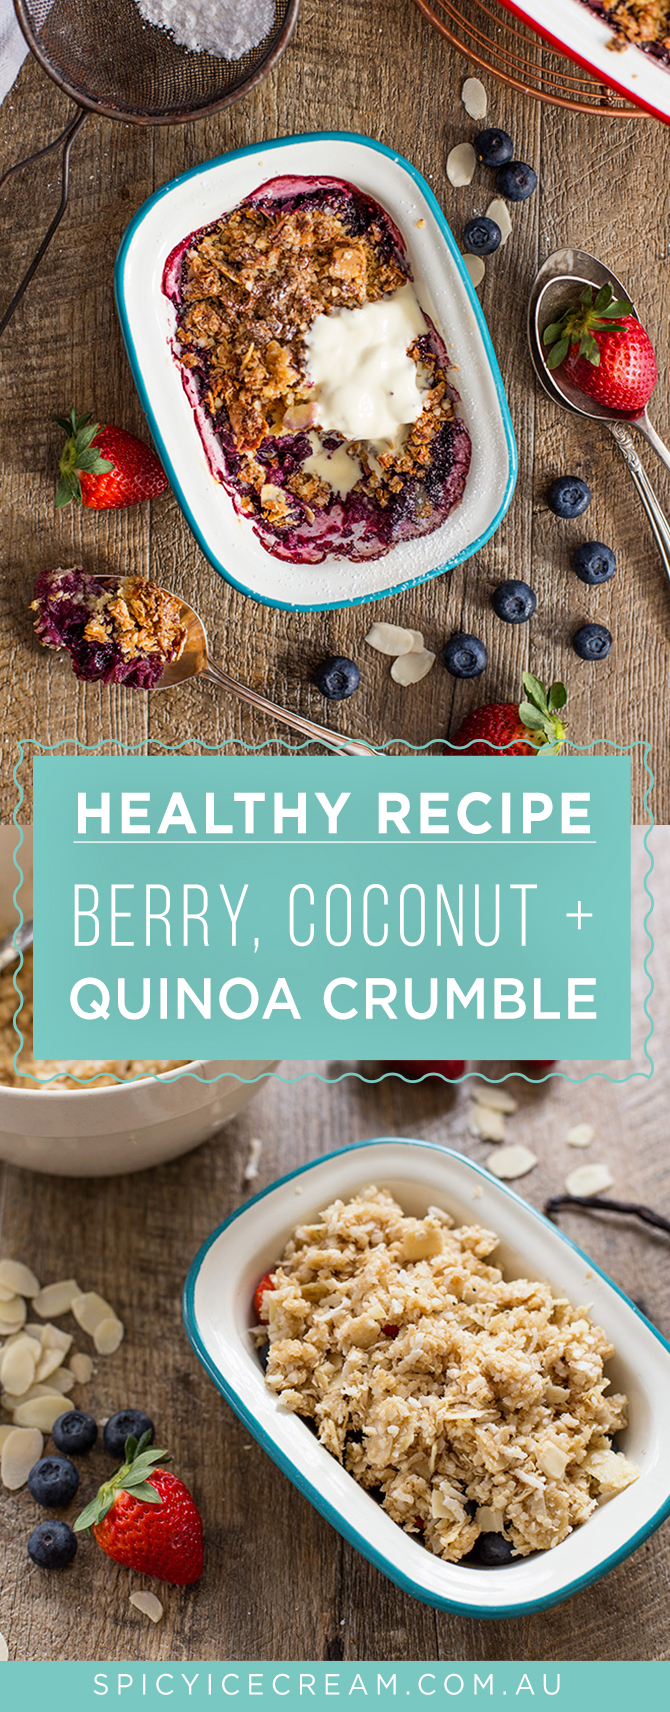 Healthy Berry, Coconut & Quinoa Crumble